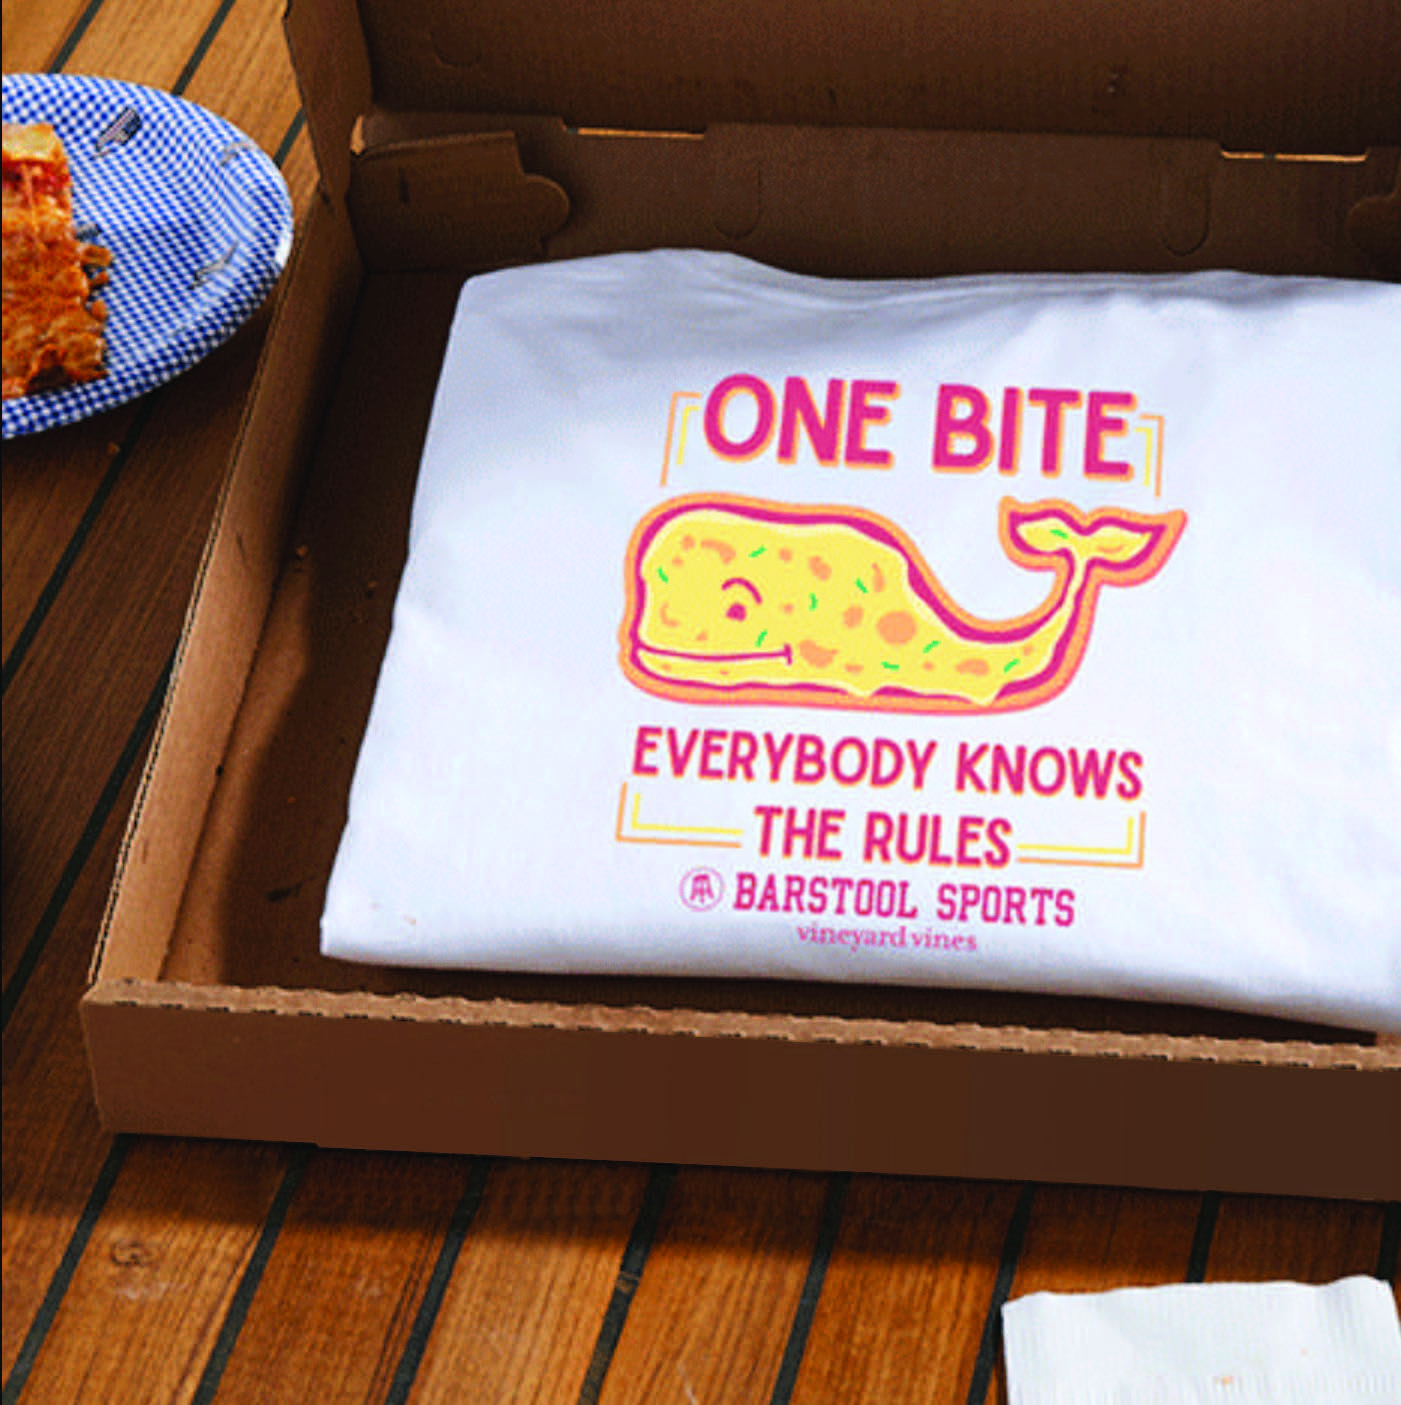 barstool sports partnership with vineyard vines one bite everyone knows the rules t shirt